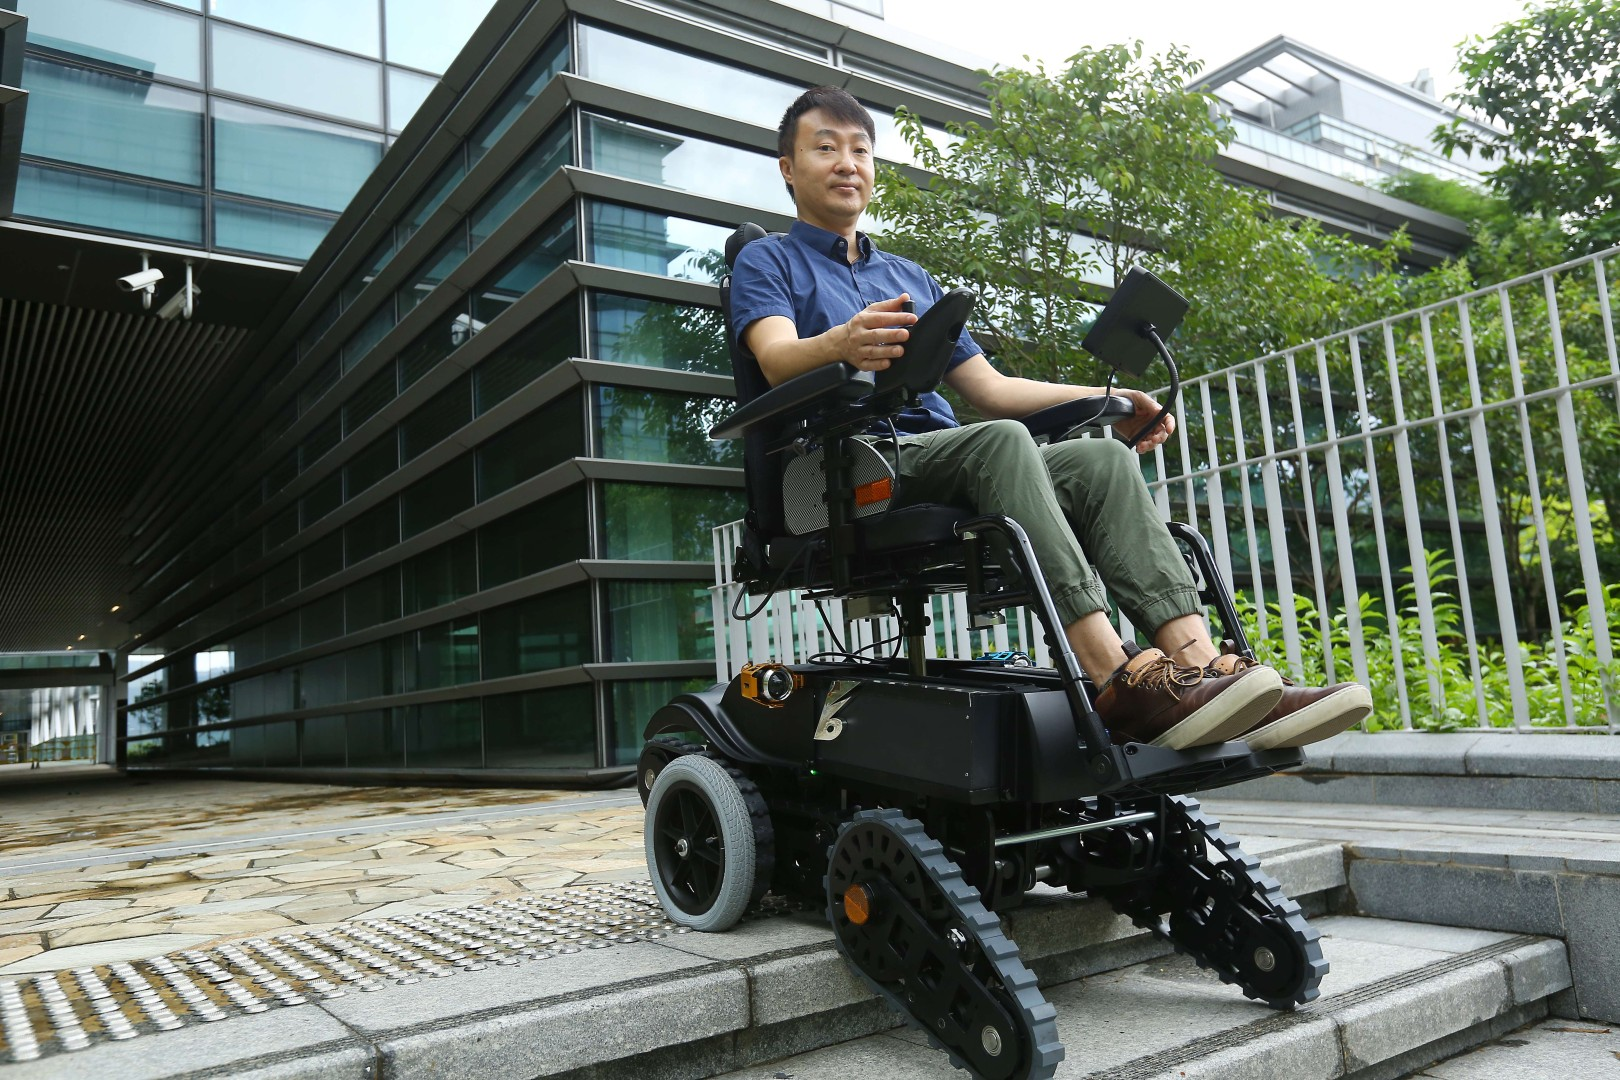 Inventor's stair-climbing wheelchair set to conquer obstacles for